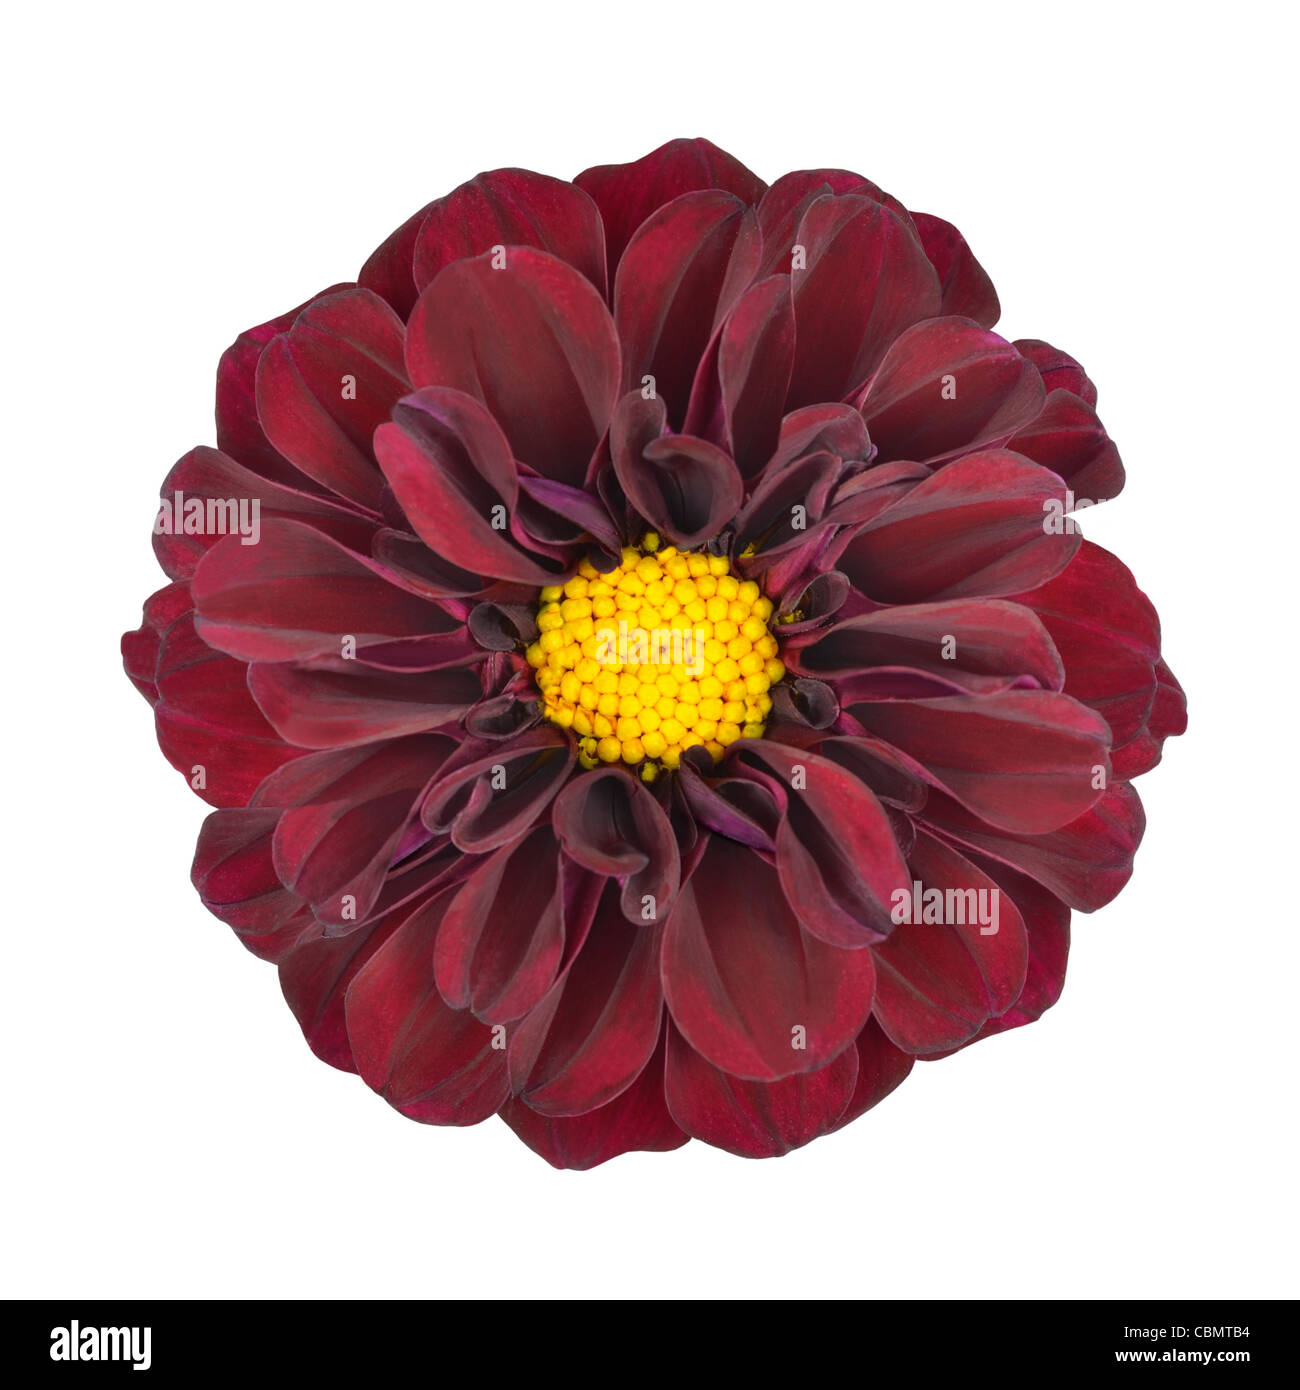 Red Dahlia Flower with Yellow Center Isolated on White Background ...